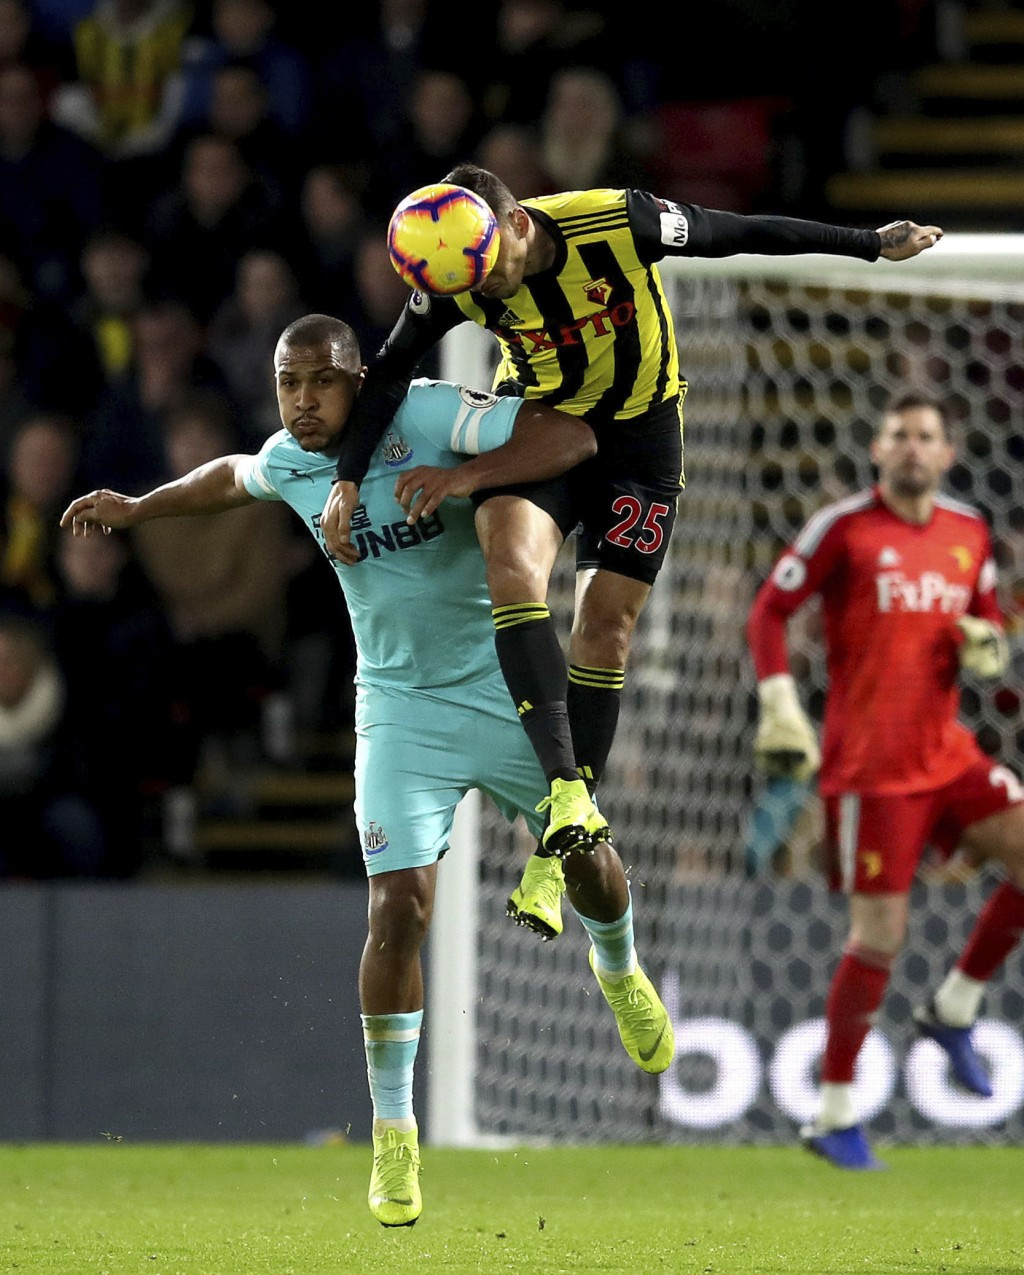 Newcastle United's Salomon Rondon, left, and Watford's Jose Holebas during their English Premier League soccer match, at Vicarage Road in Watford, Lon...